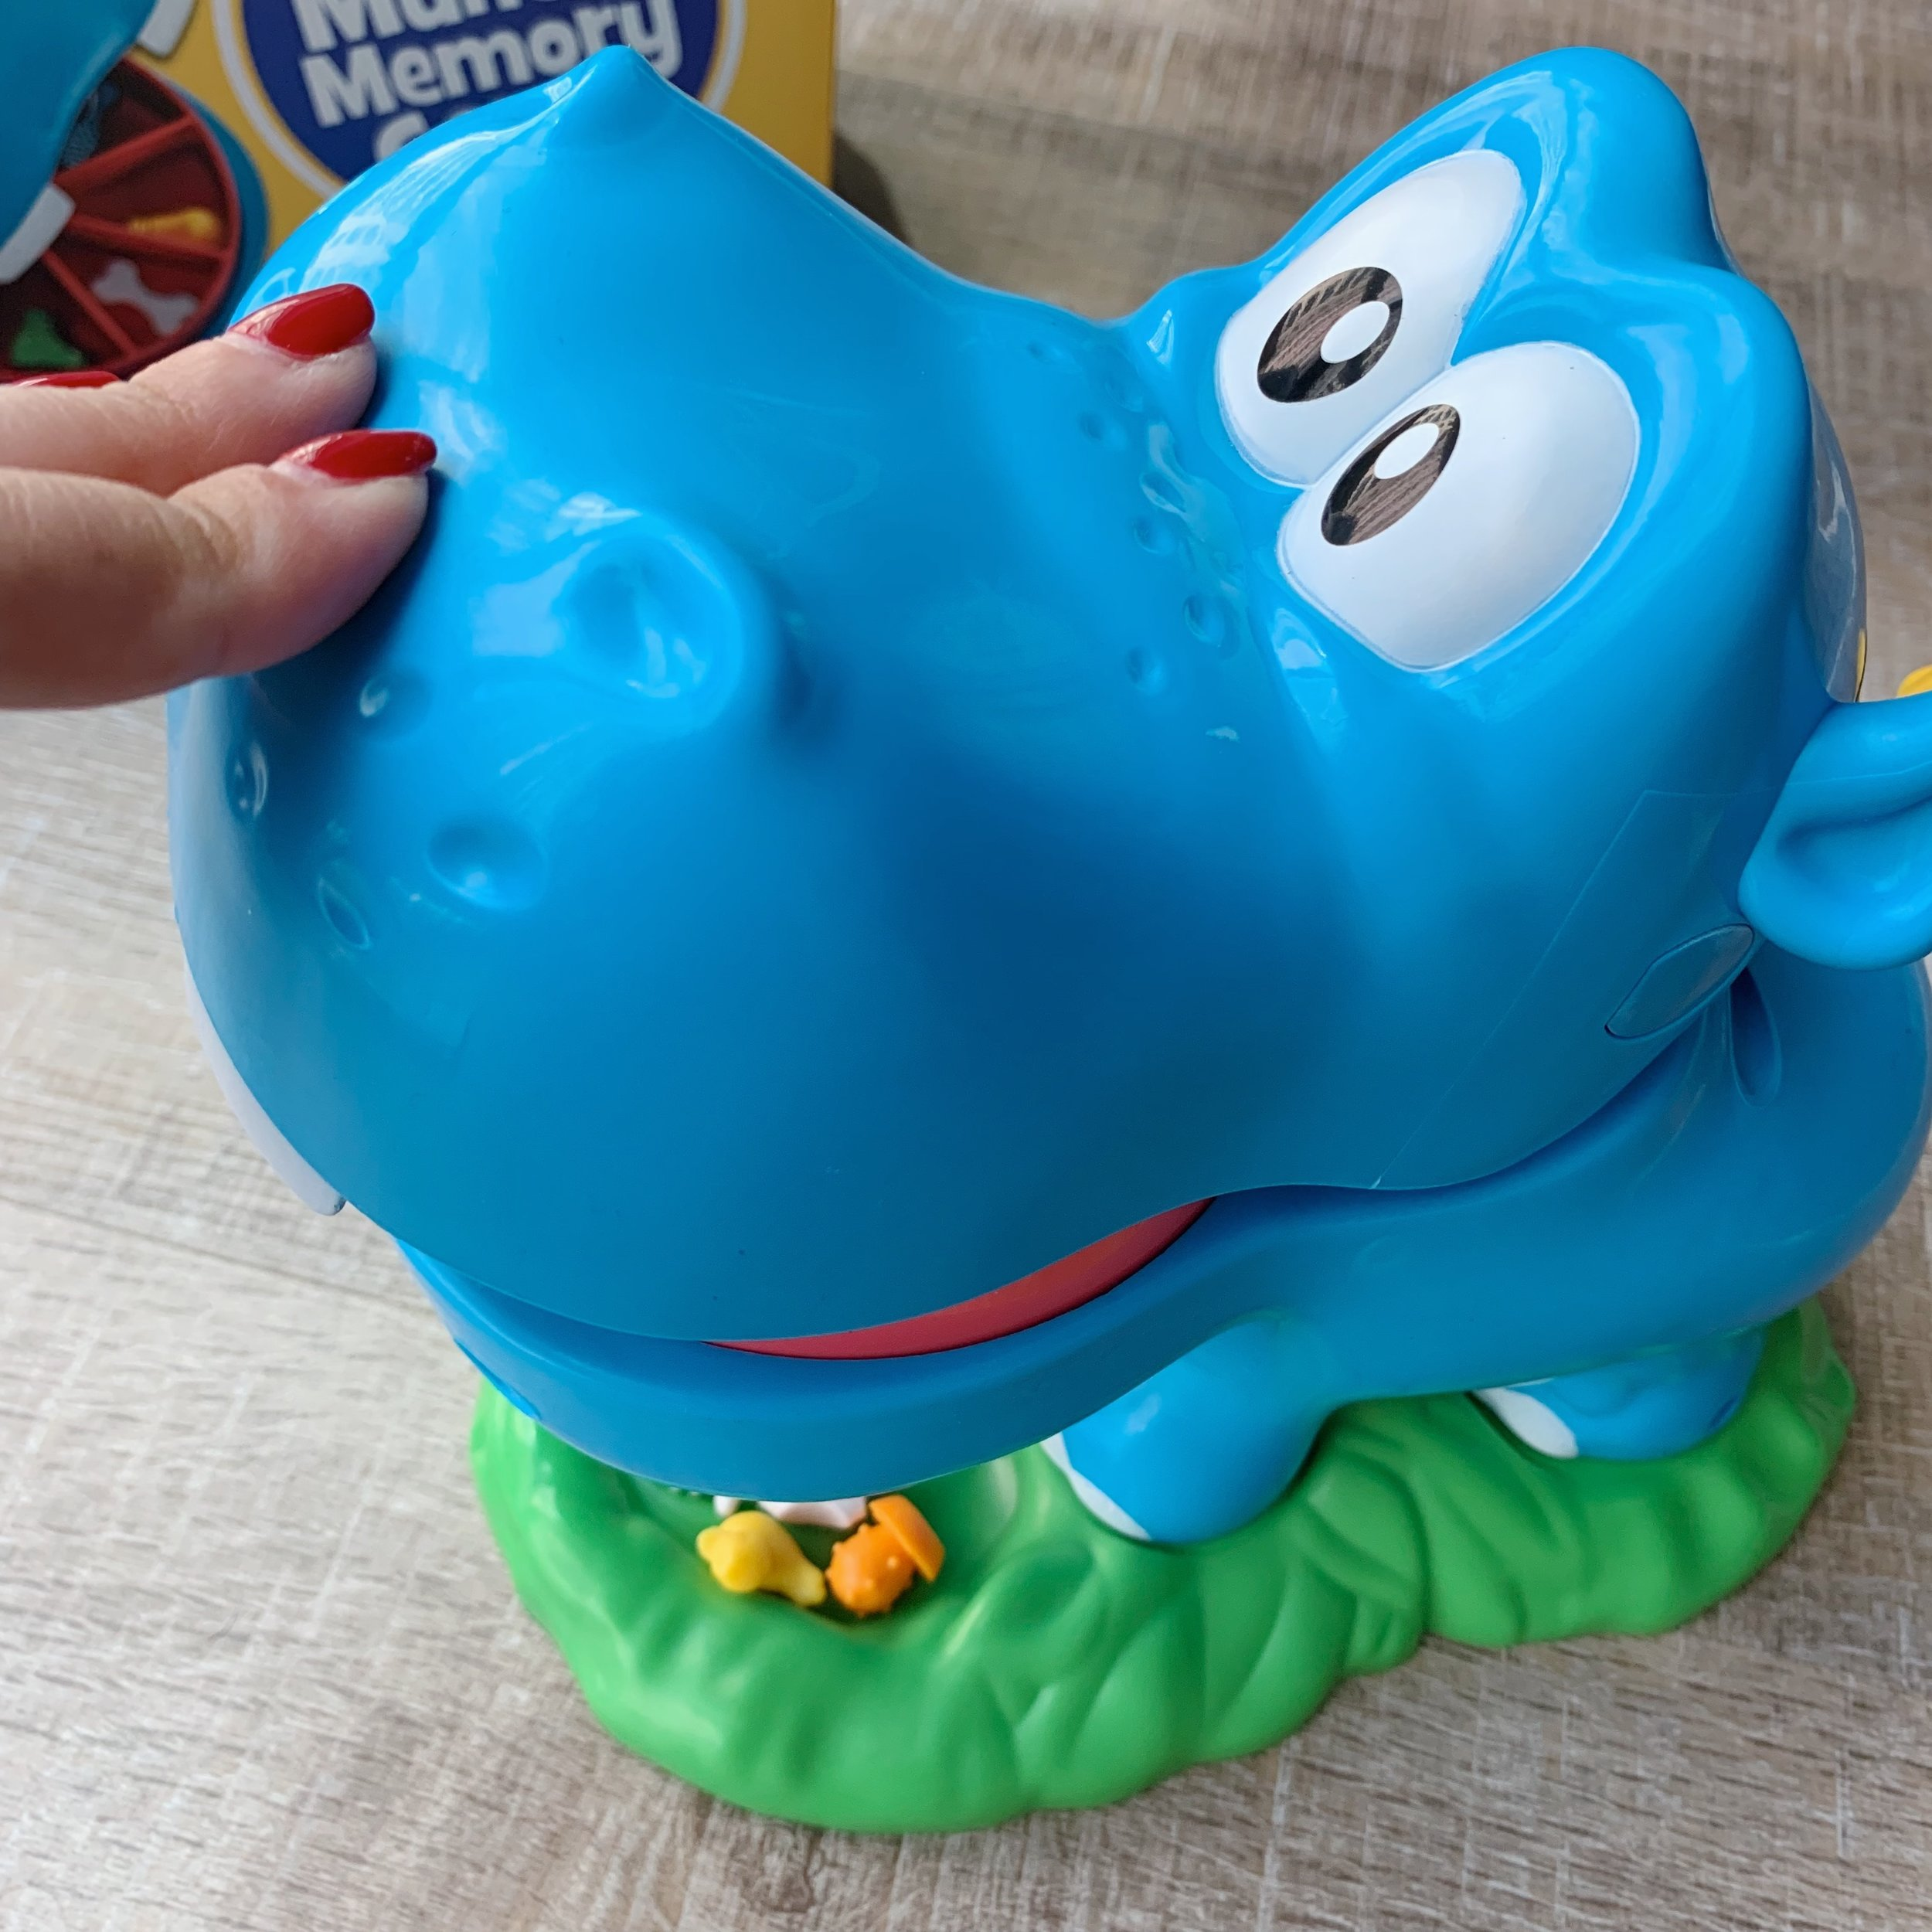 uh oh hippo game